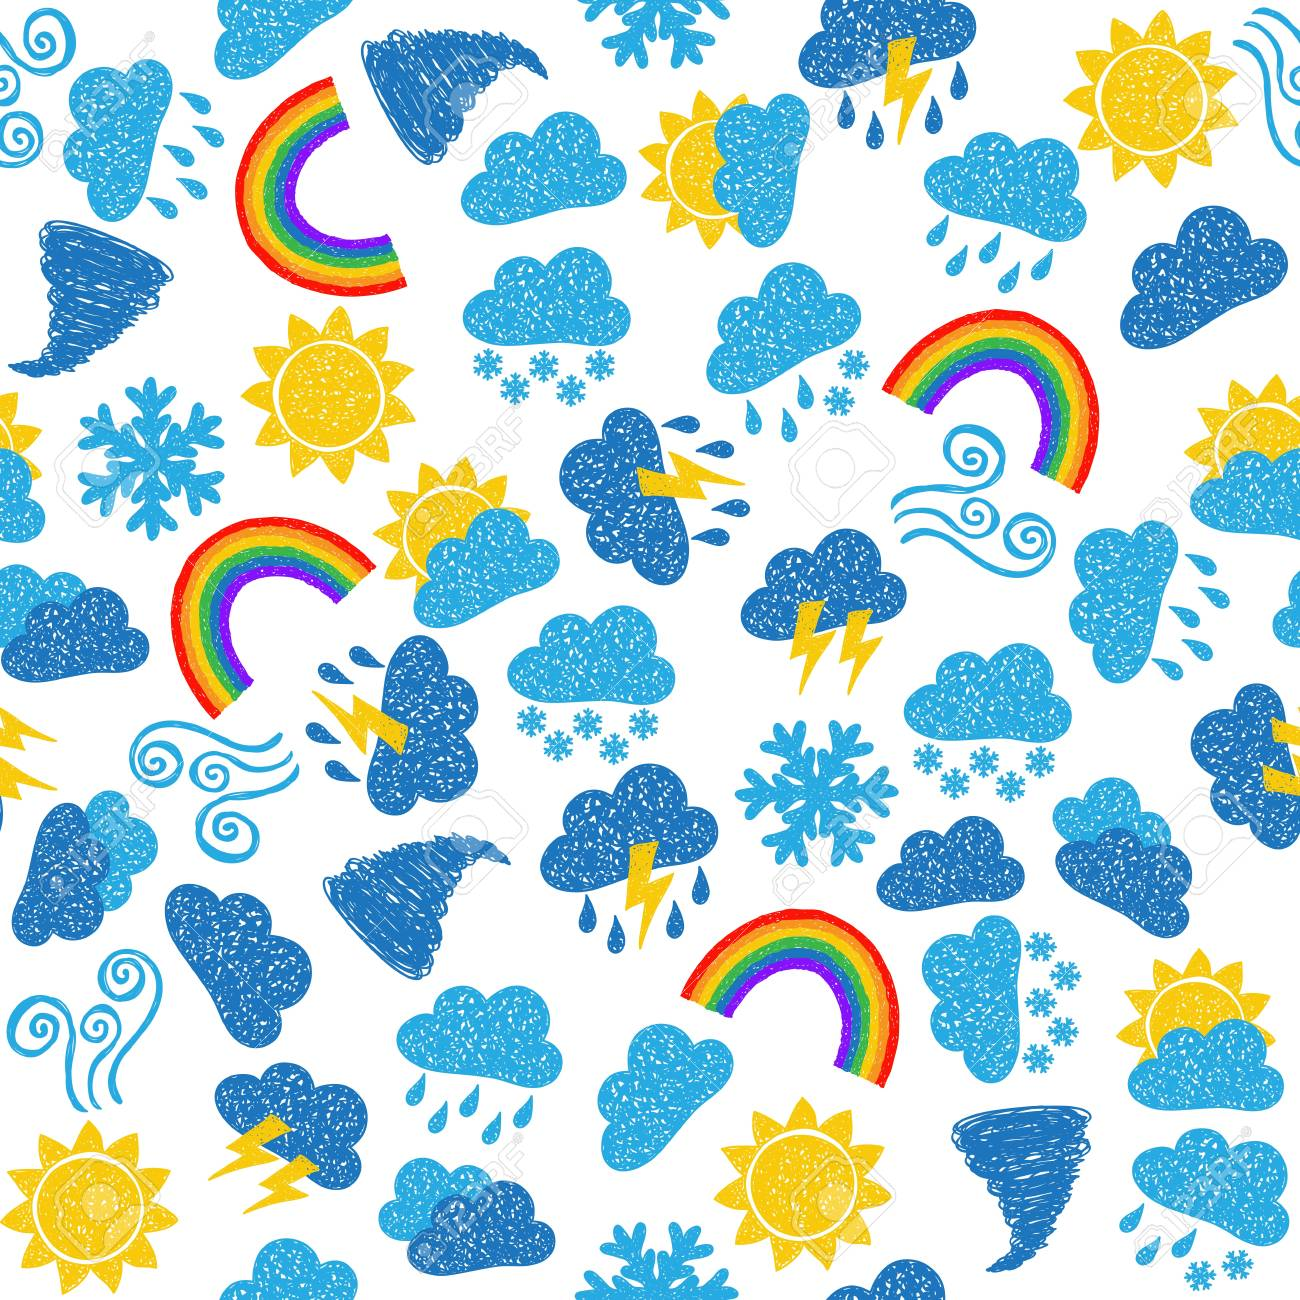 Seamless pattern background - illustration of weather icons, doodle style Stock Vector - 17526661